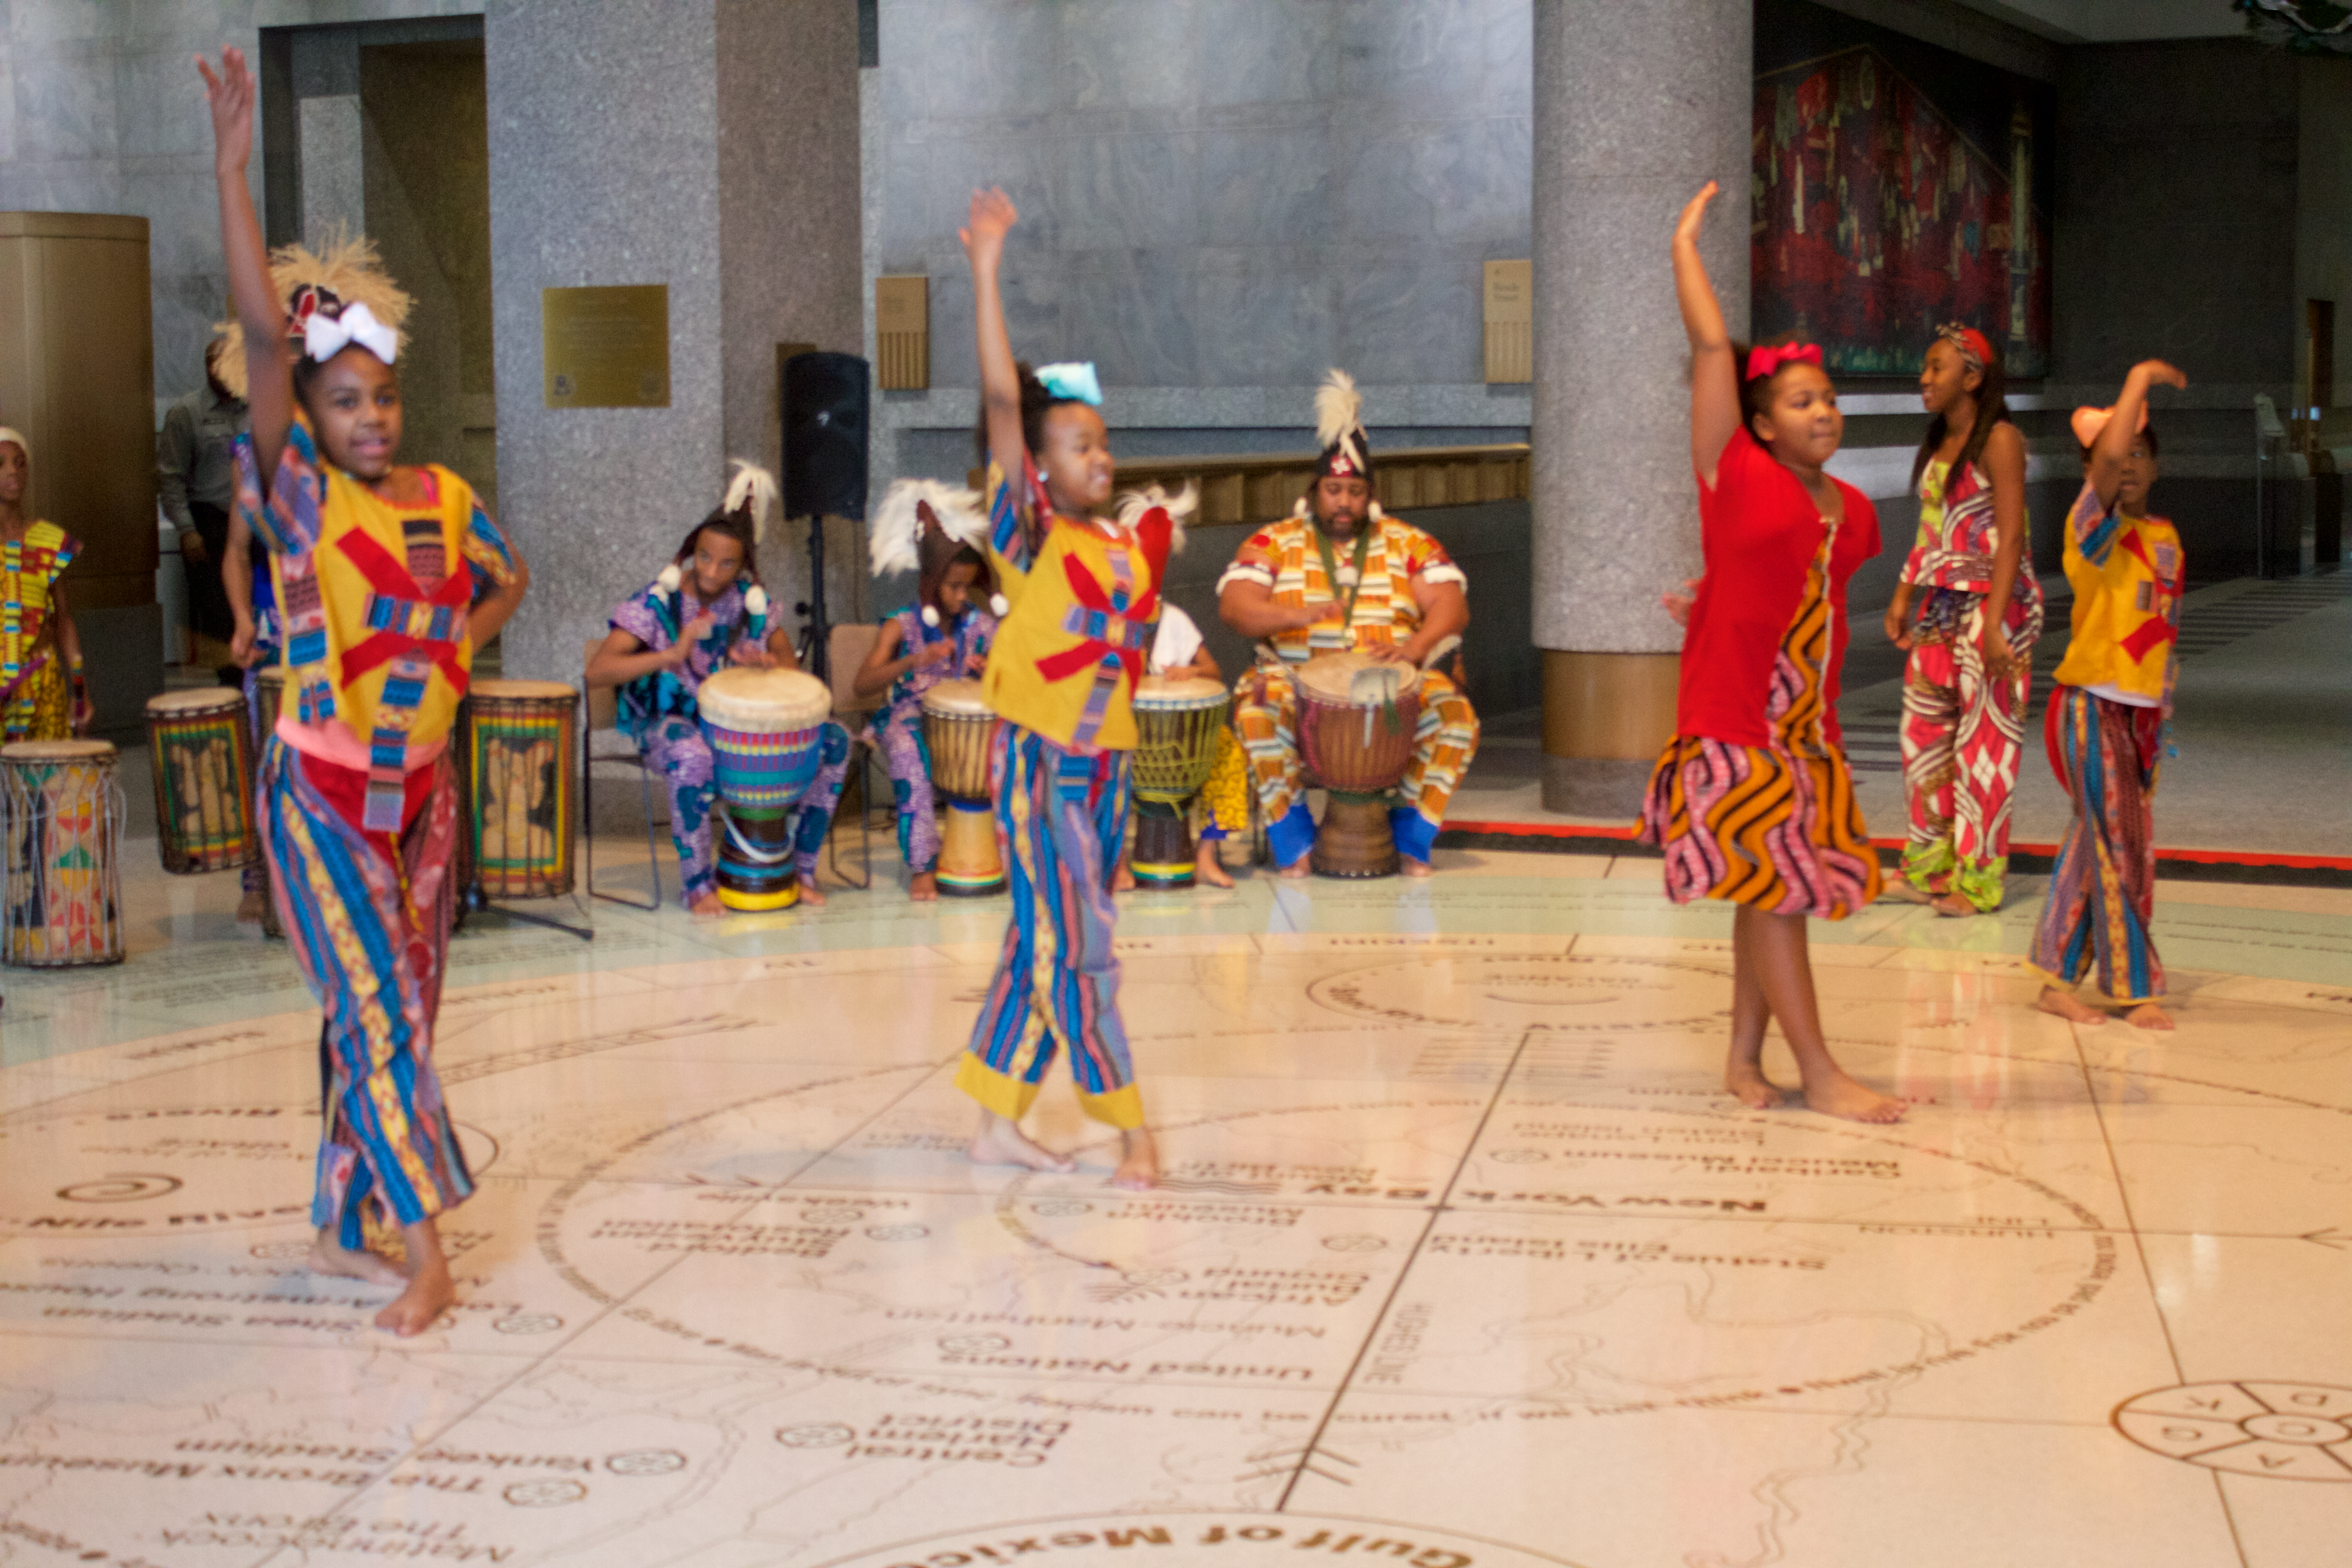 Performers dance in lobby